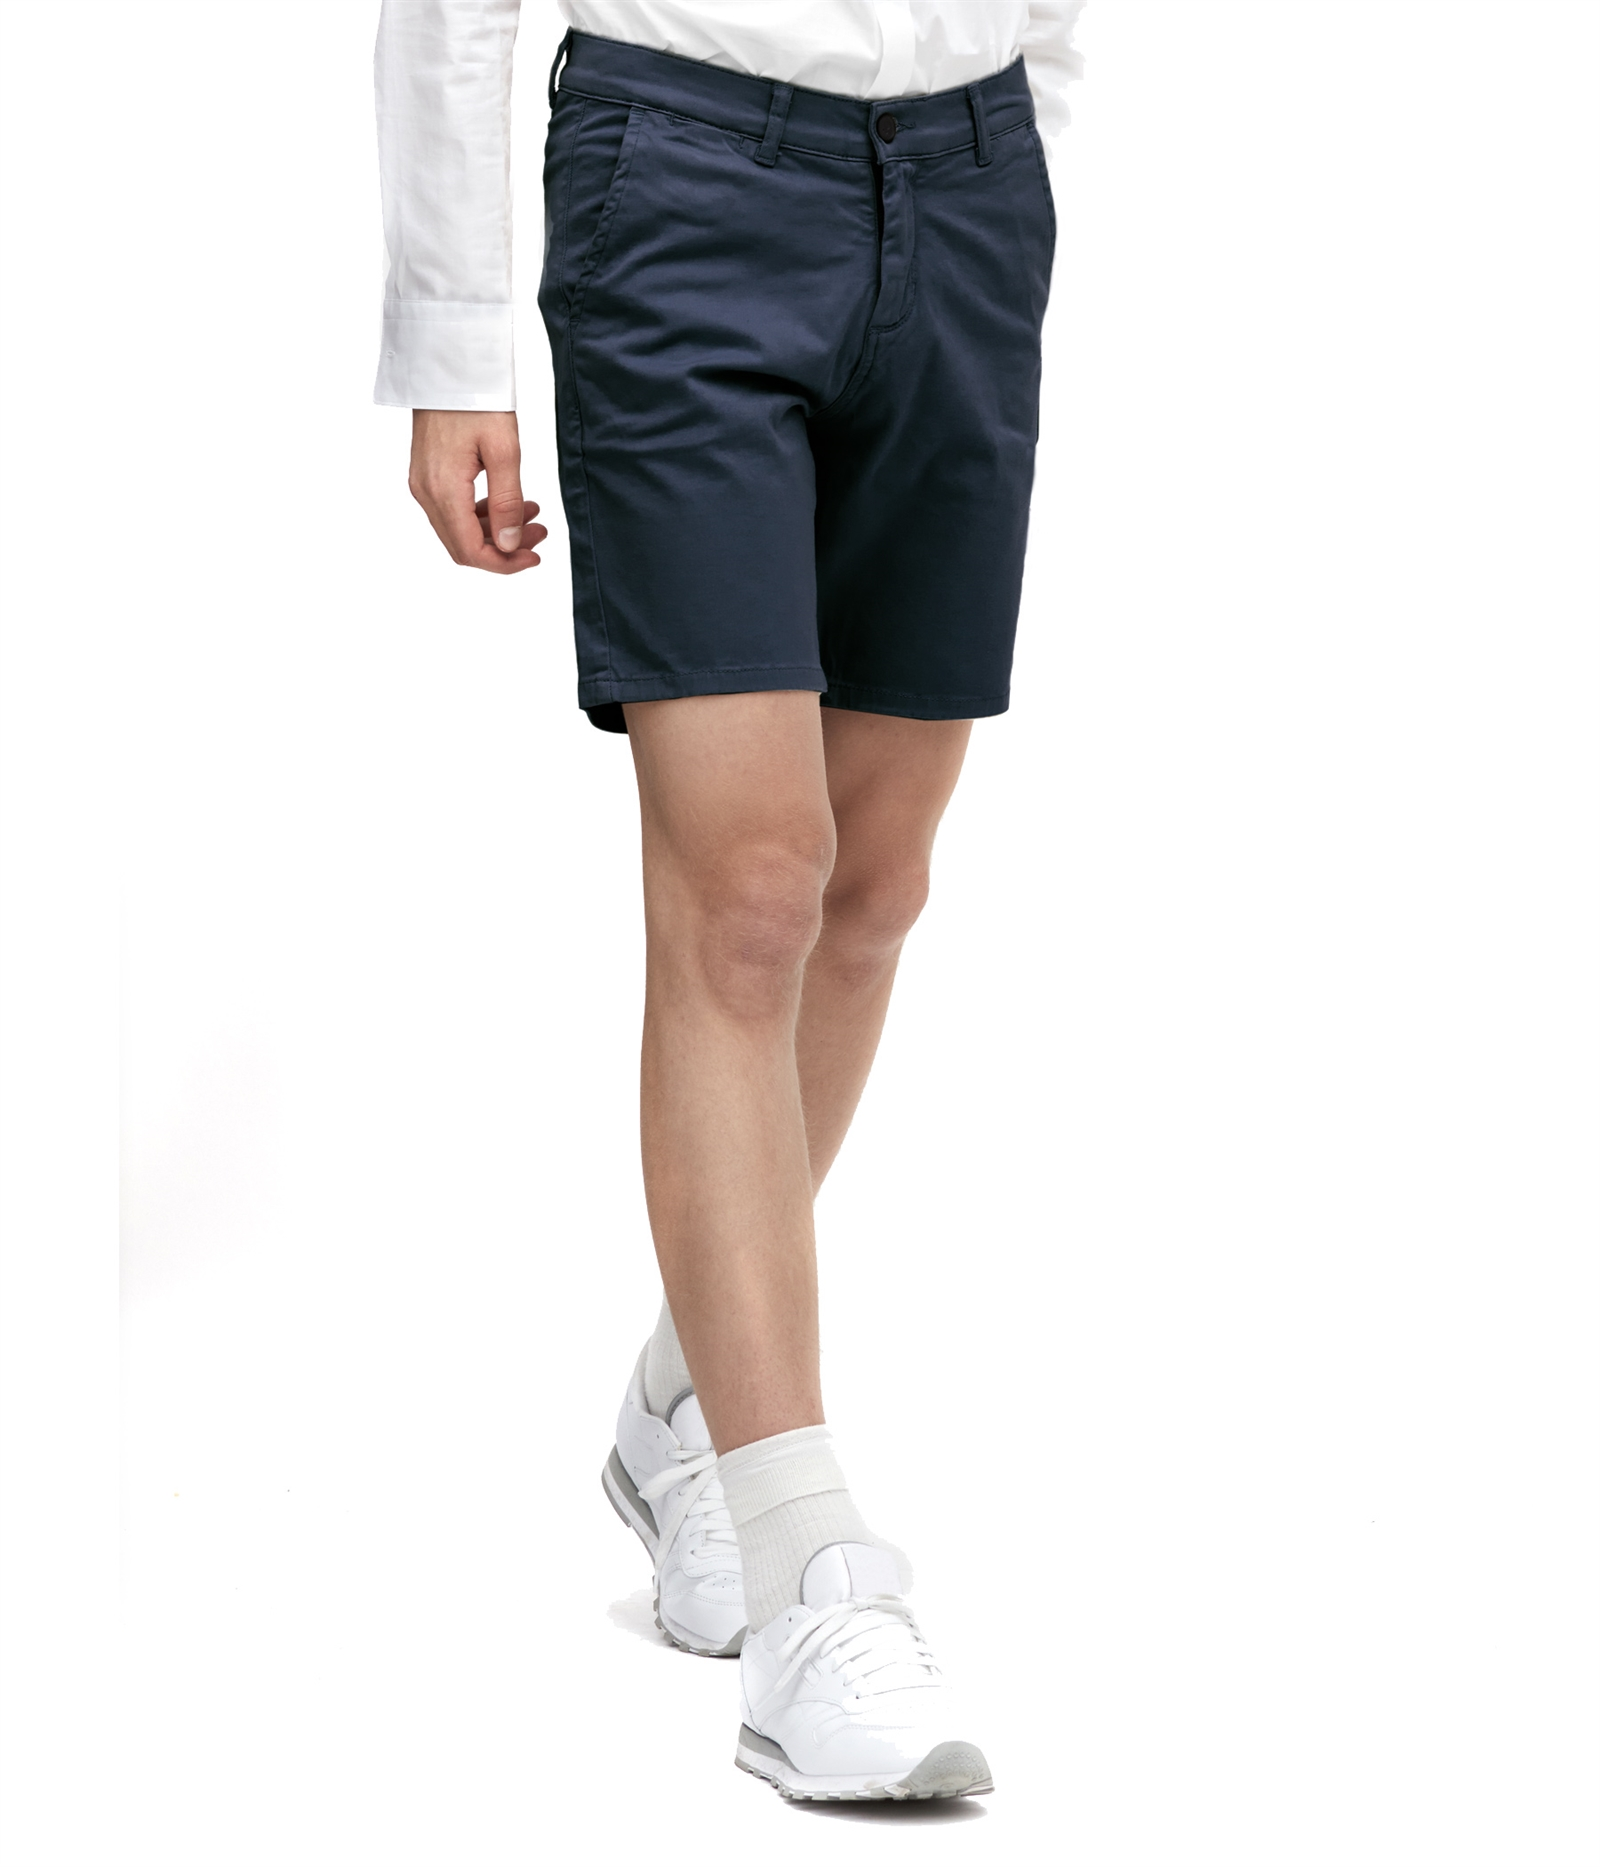 VBN_Adan_shorts_navy_1902200001_1800_2100